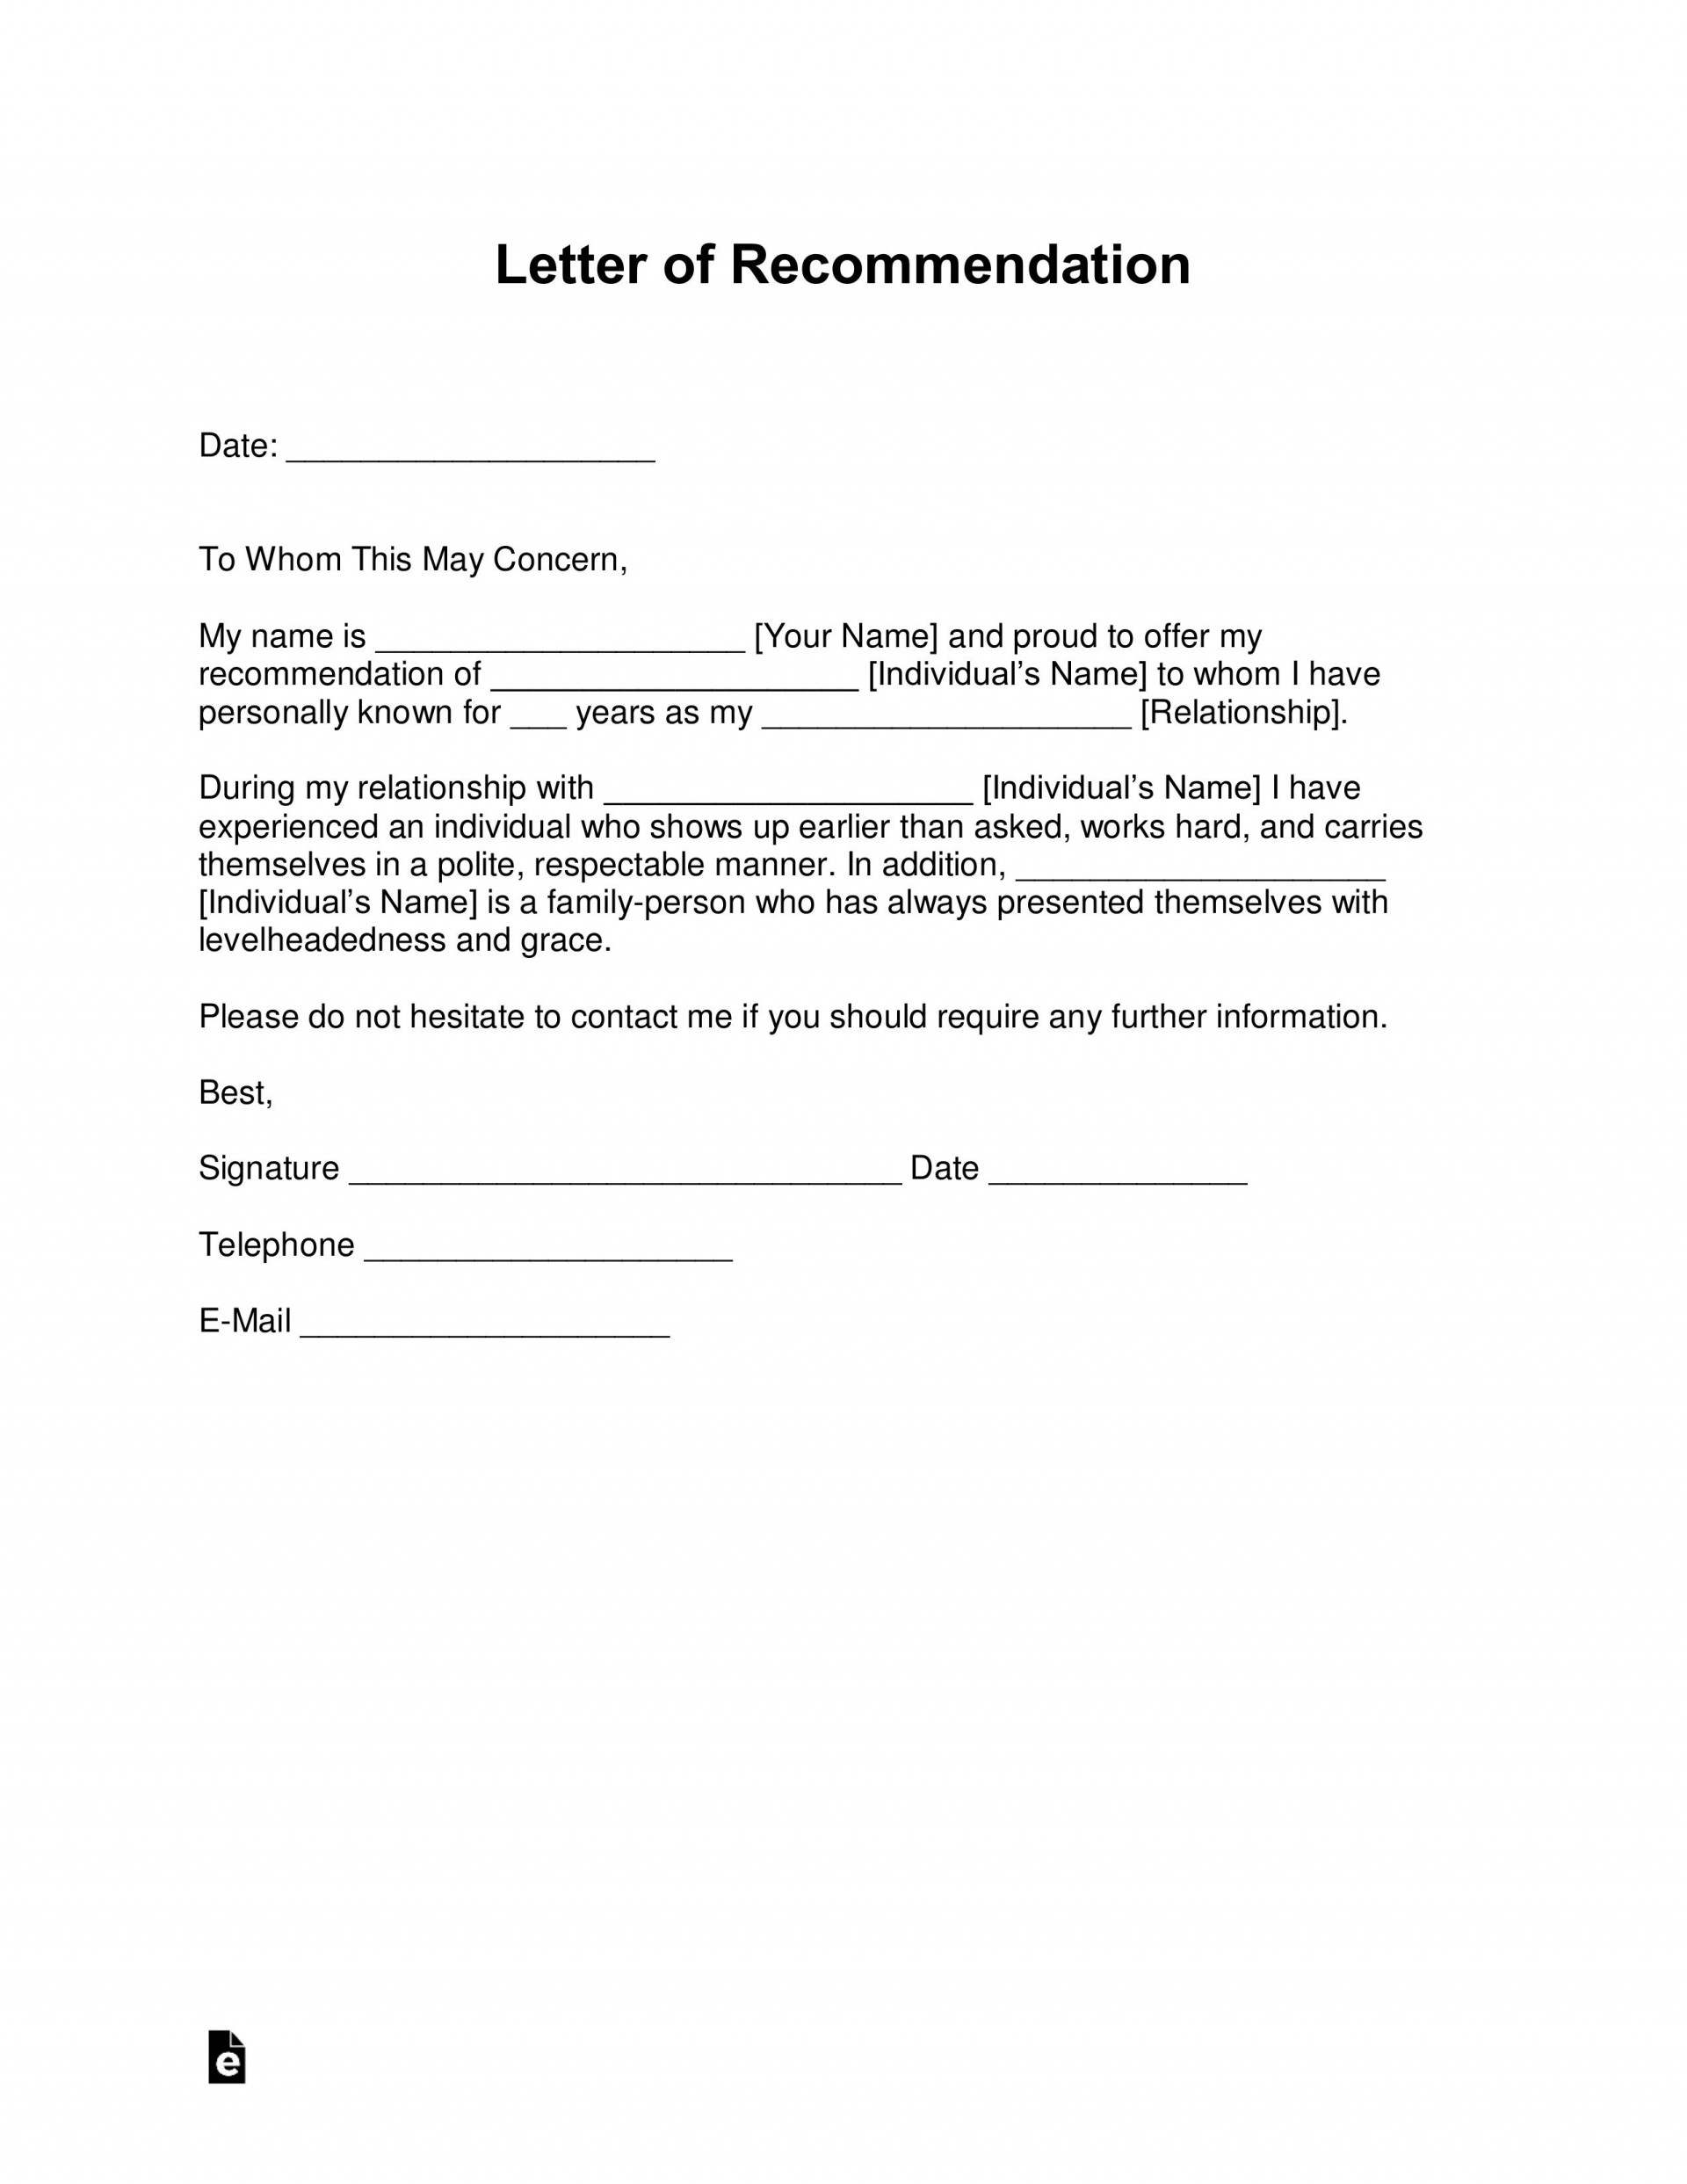 008 Outstanding Letter Of Recomendation Template Picture  Reference For Employment Sample Recommendation Teacher Student From Employer1920